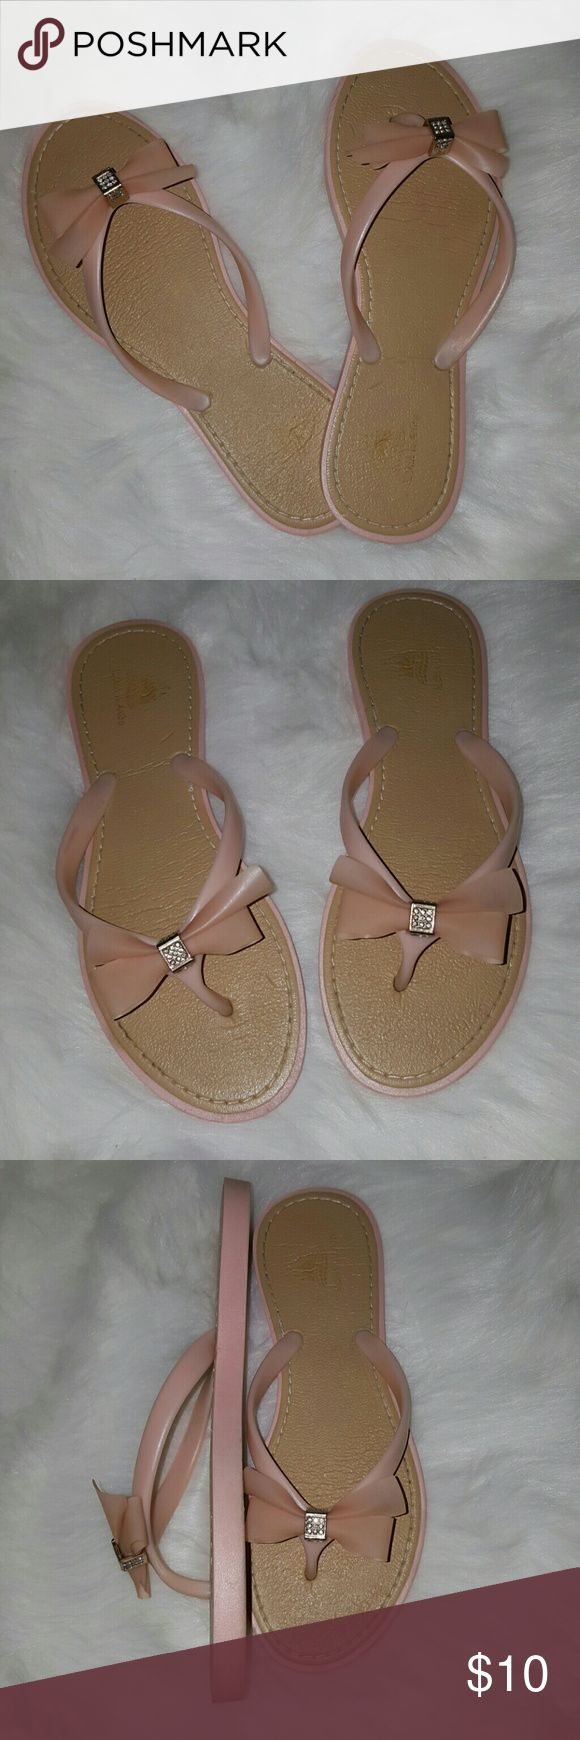 Light Pink/Blush Flip Flops Only worn a handful of times. Thick and cushiony. They are a very light opaque pink or nude blush color.  Please see pics as part of description. I ship within 1 business day of payment receipt. Shoes Sandals